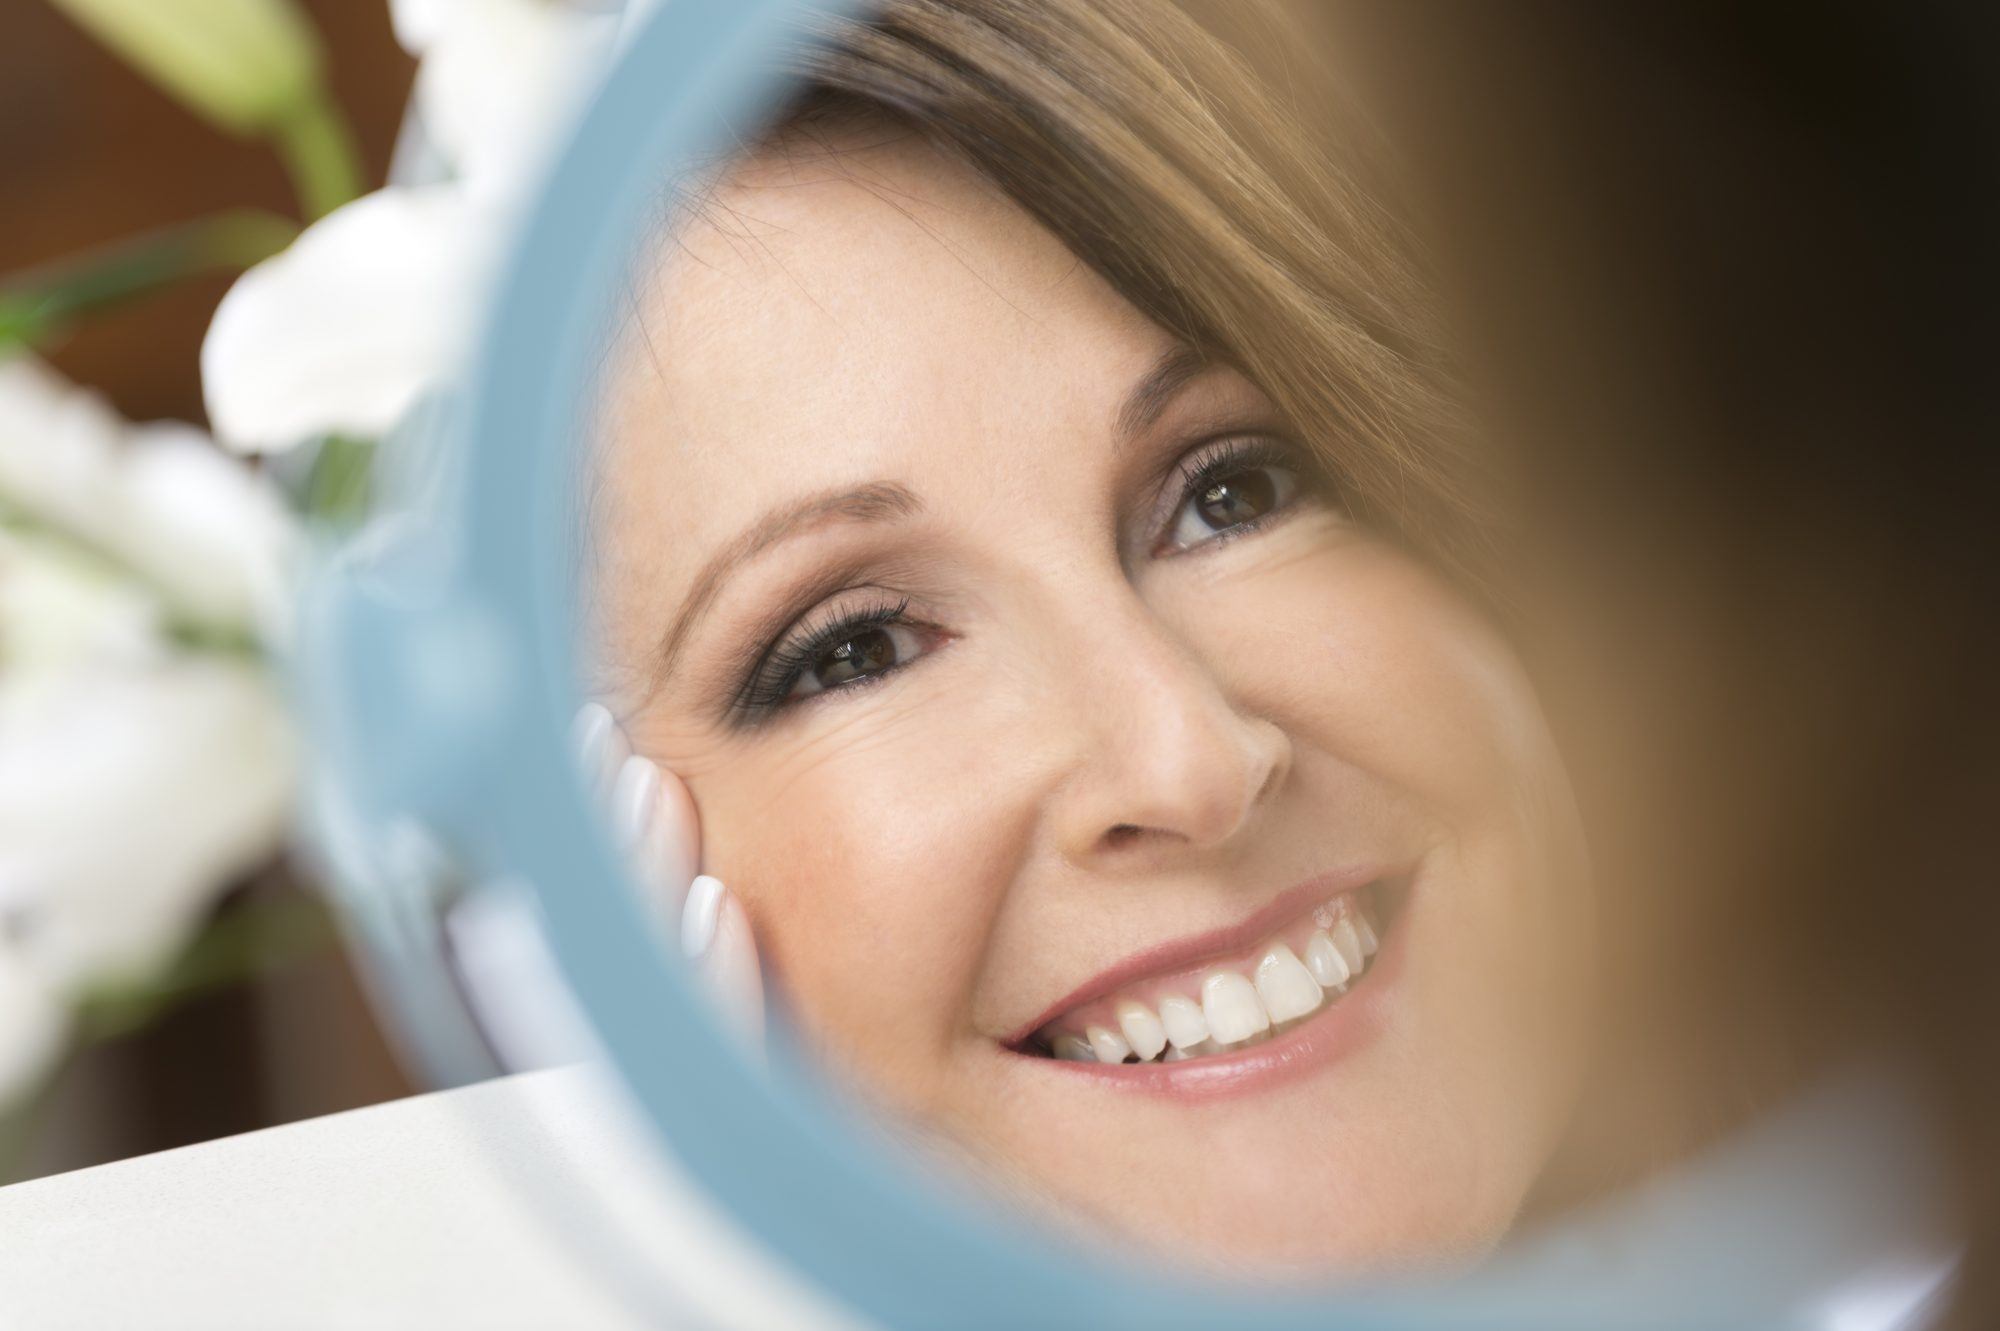 Woman Looking in Makeup Mirror